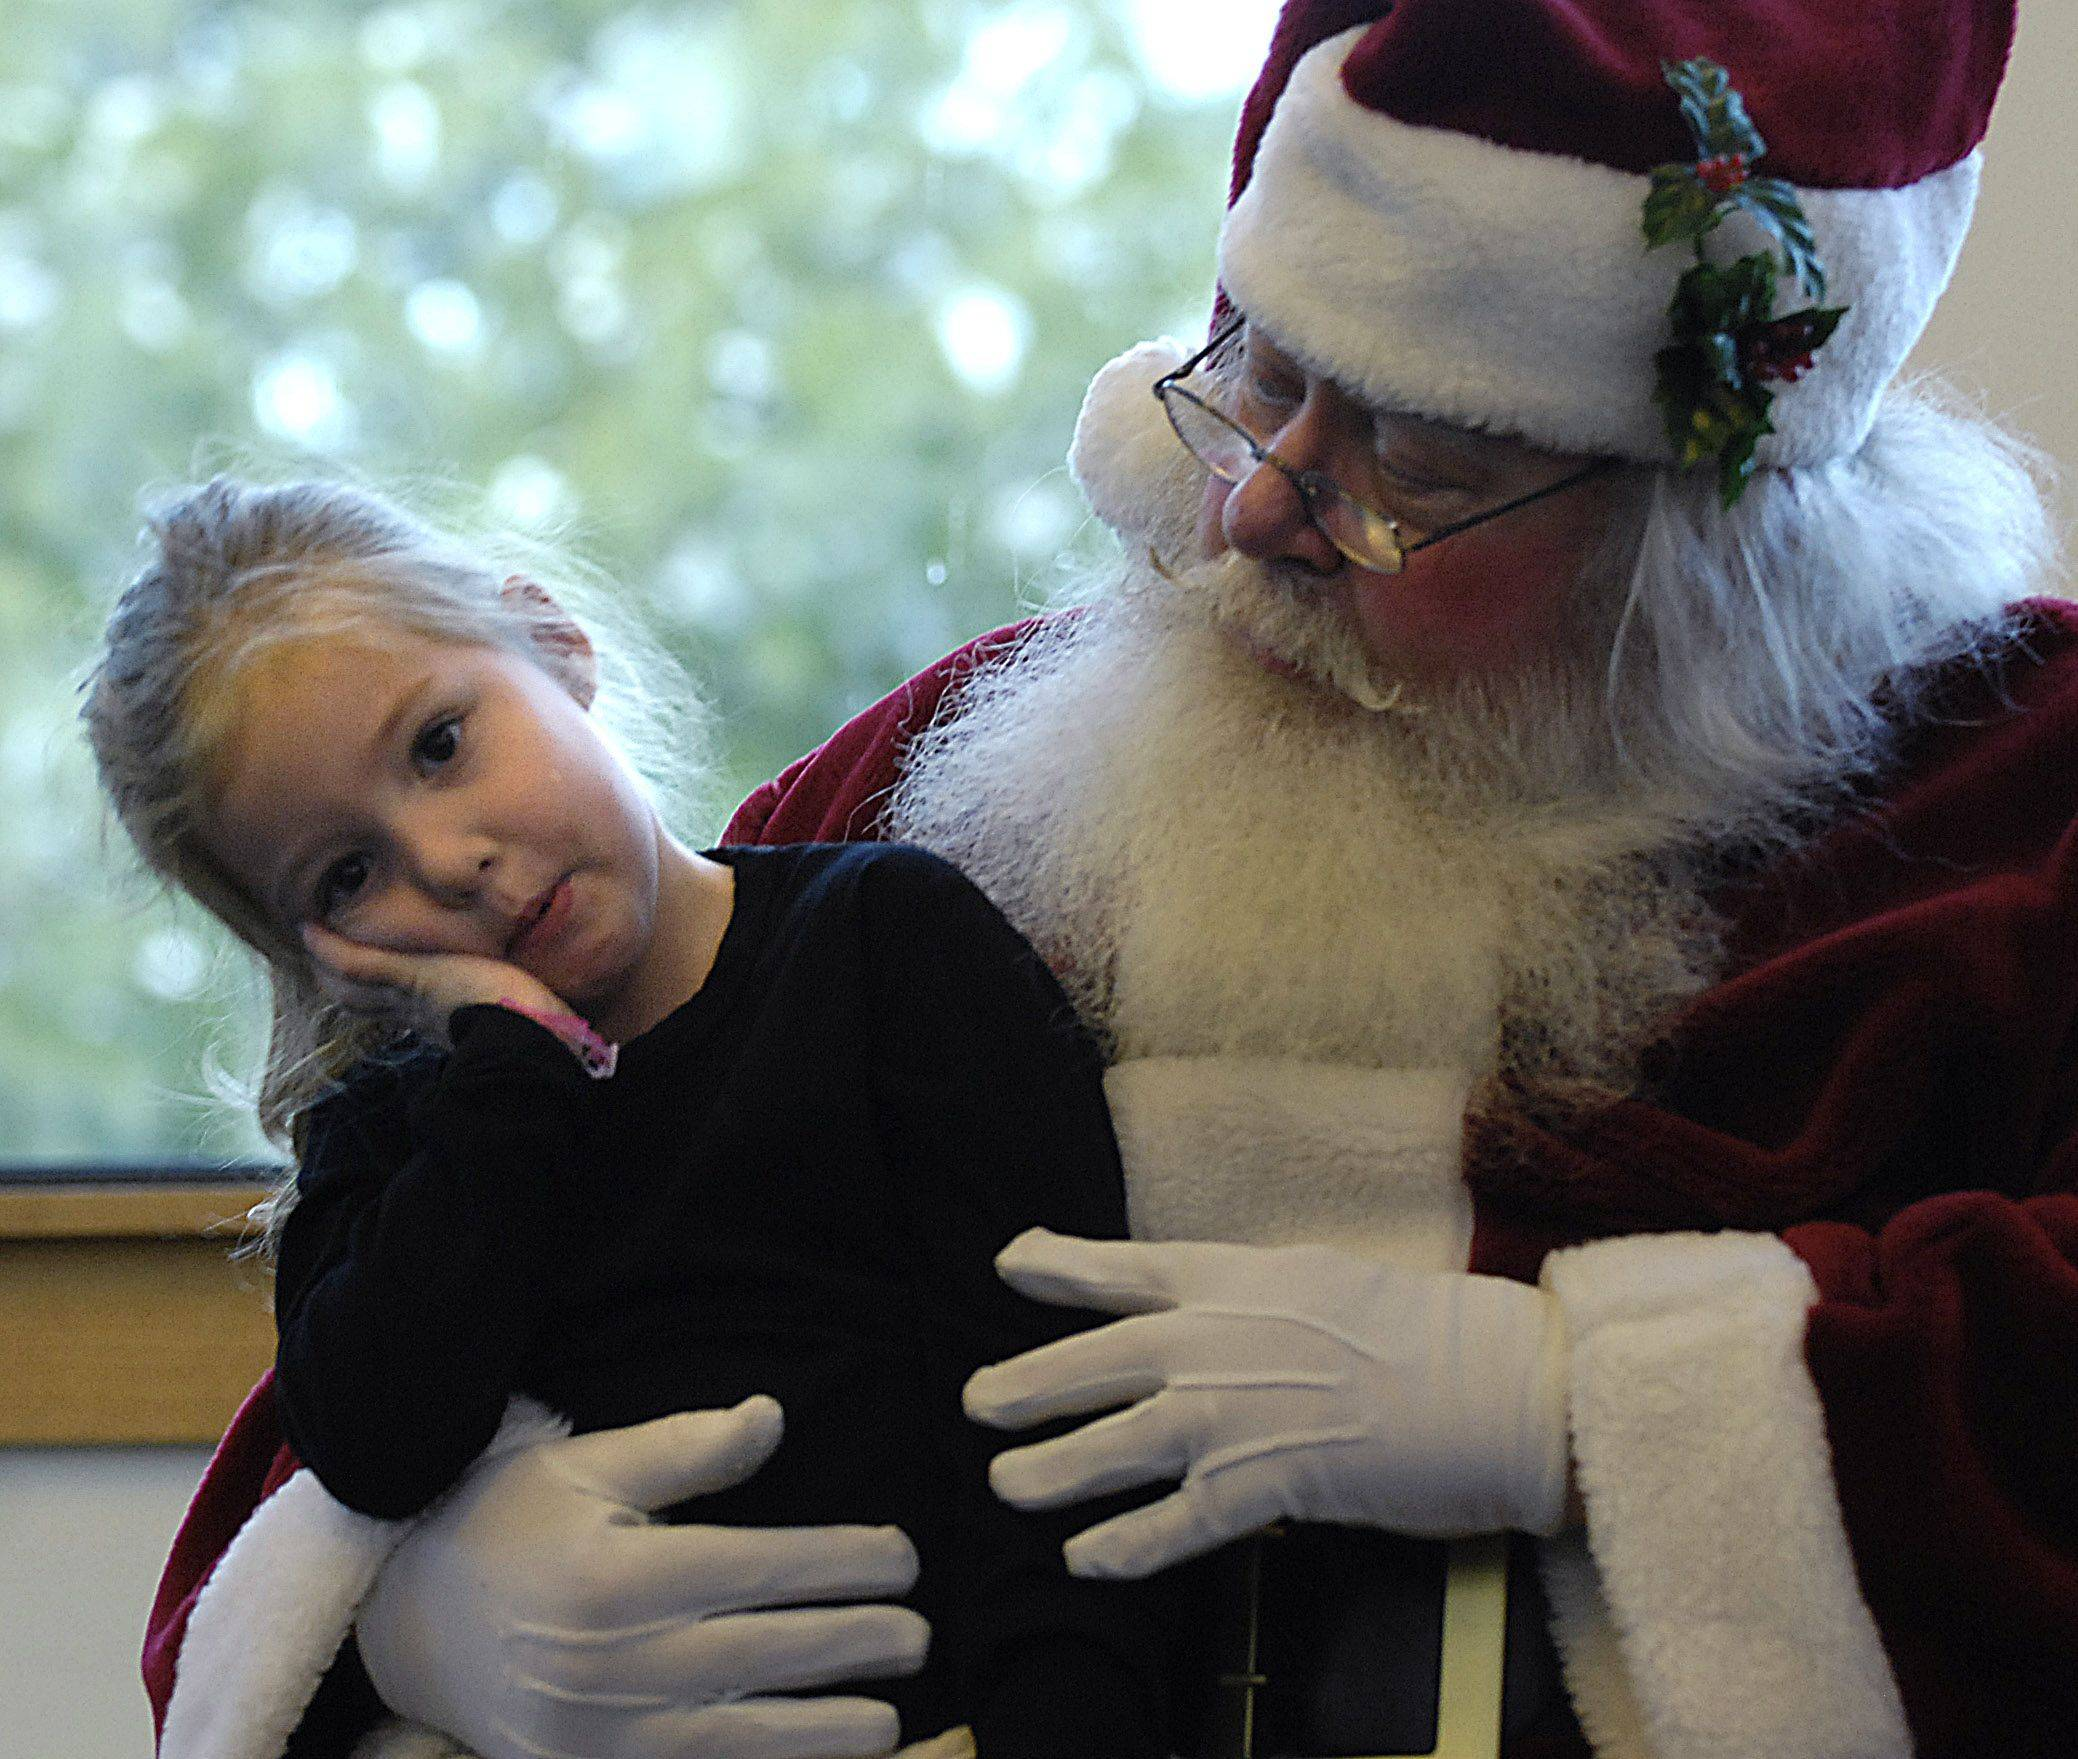 Vera Indelli thinks about her answer as she speaks with Santa Claus at the Messenger Public Library's annual Holiday Open House Sunday in North Aurora Sunday. She was with her dad Bill of North Aurora. A balloon artist, a face-painter and other activities rounded out the day.